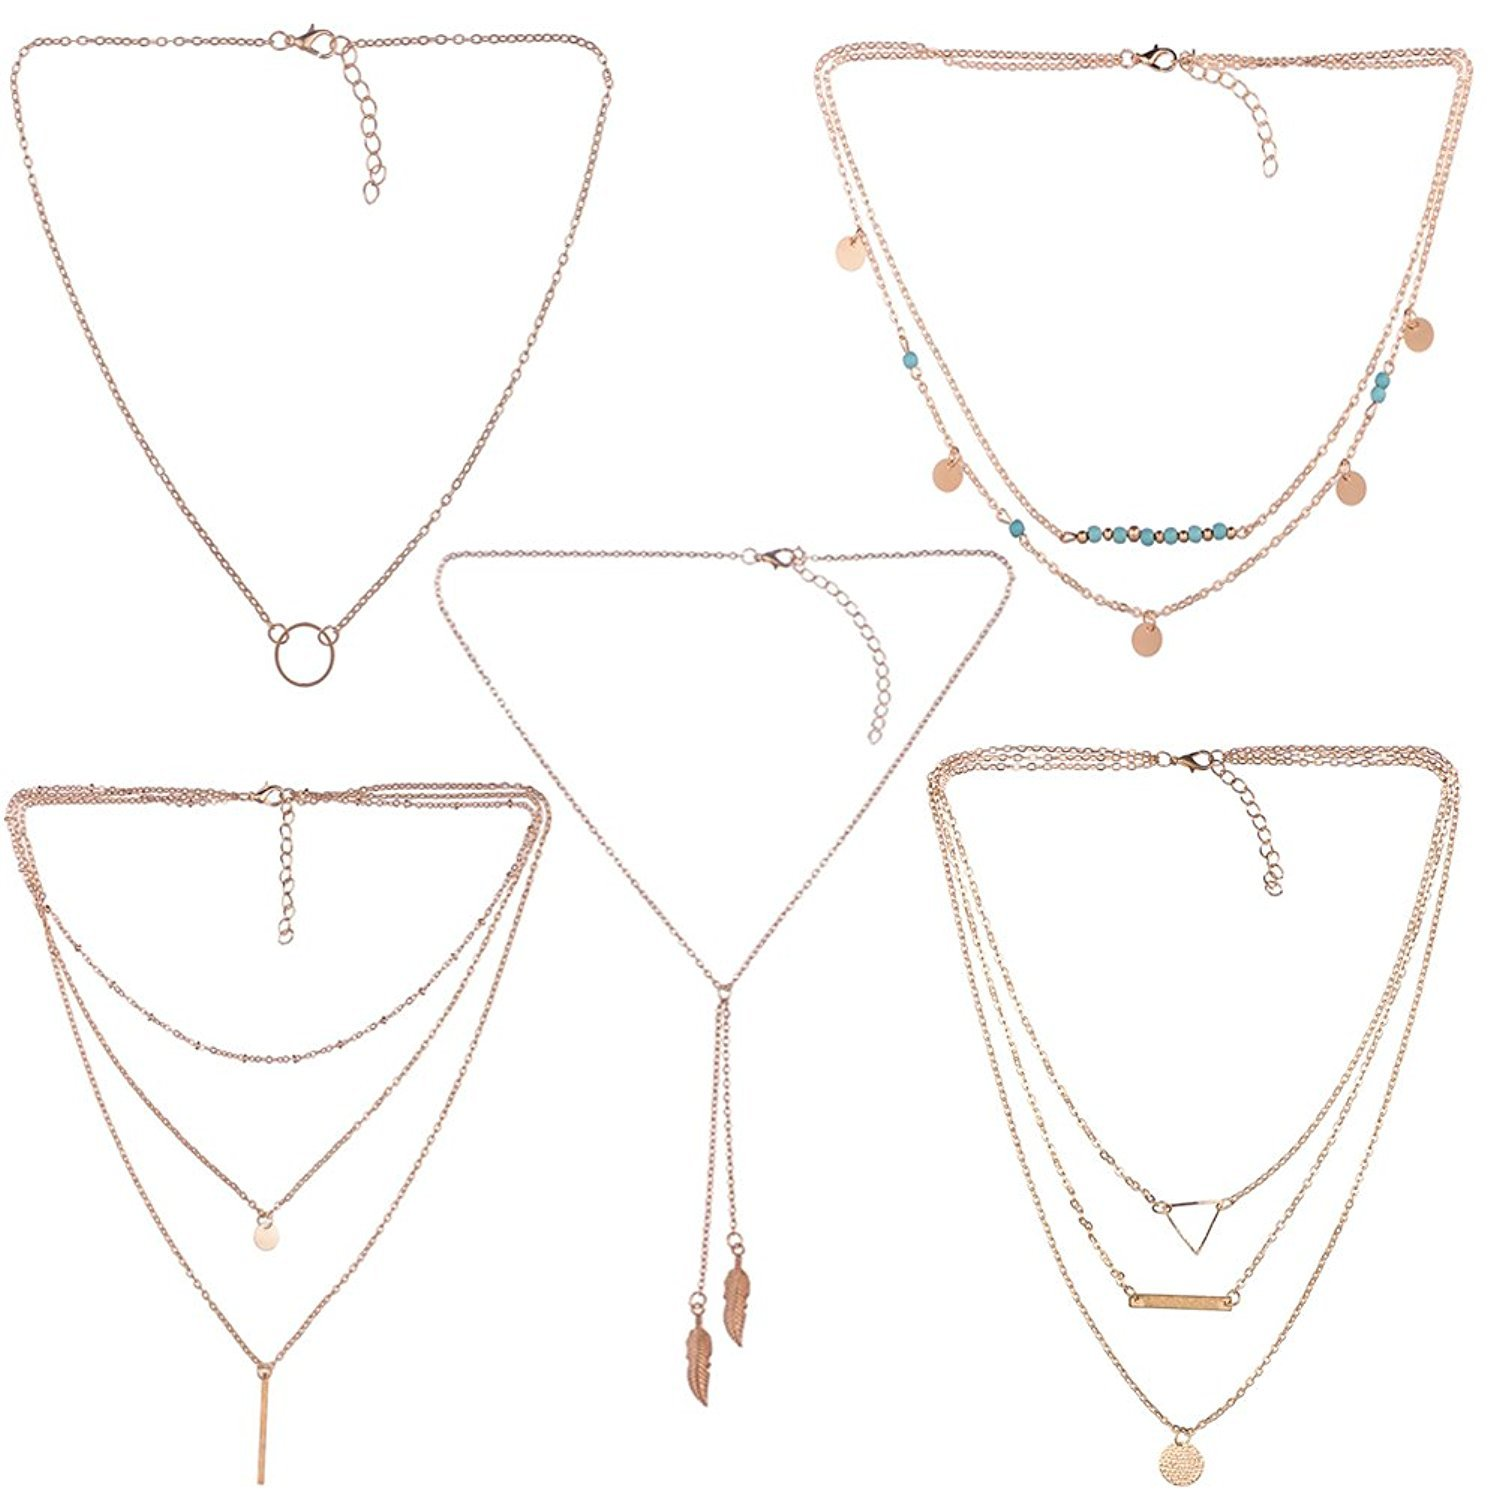 Mother's Day Gift- 5 PCS Long Lariat Y Chain Necklace Set Simple Bohemia Multilayer Pendant for Women